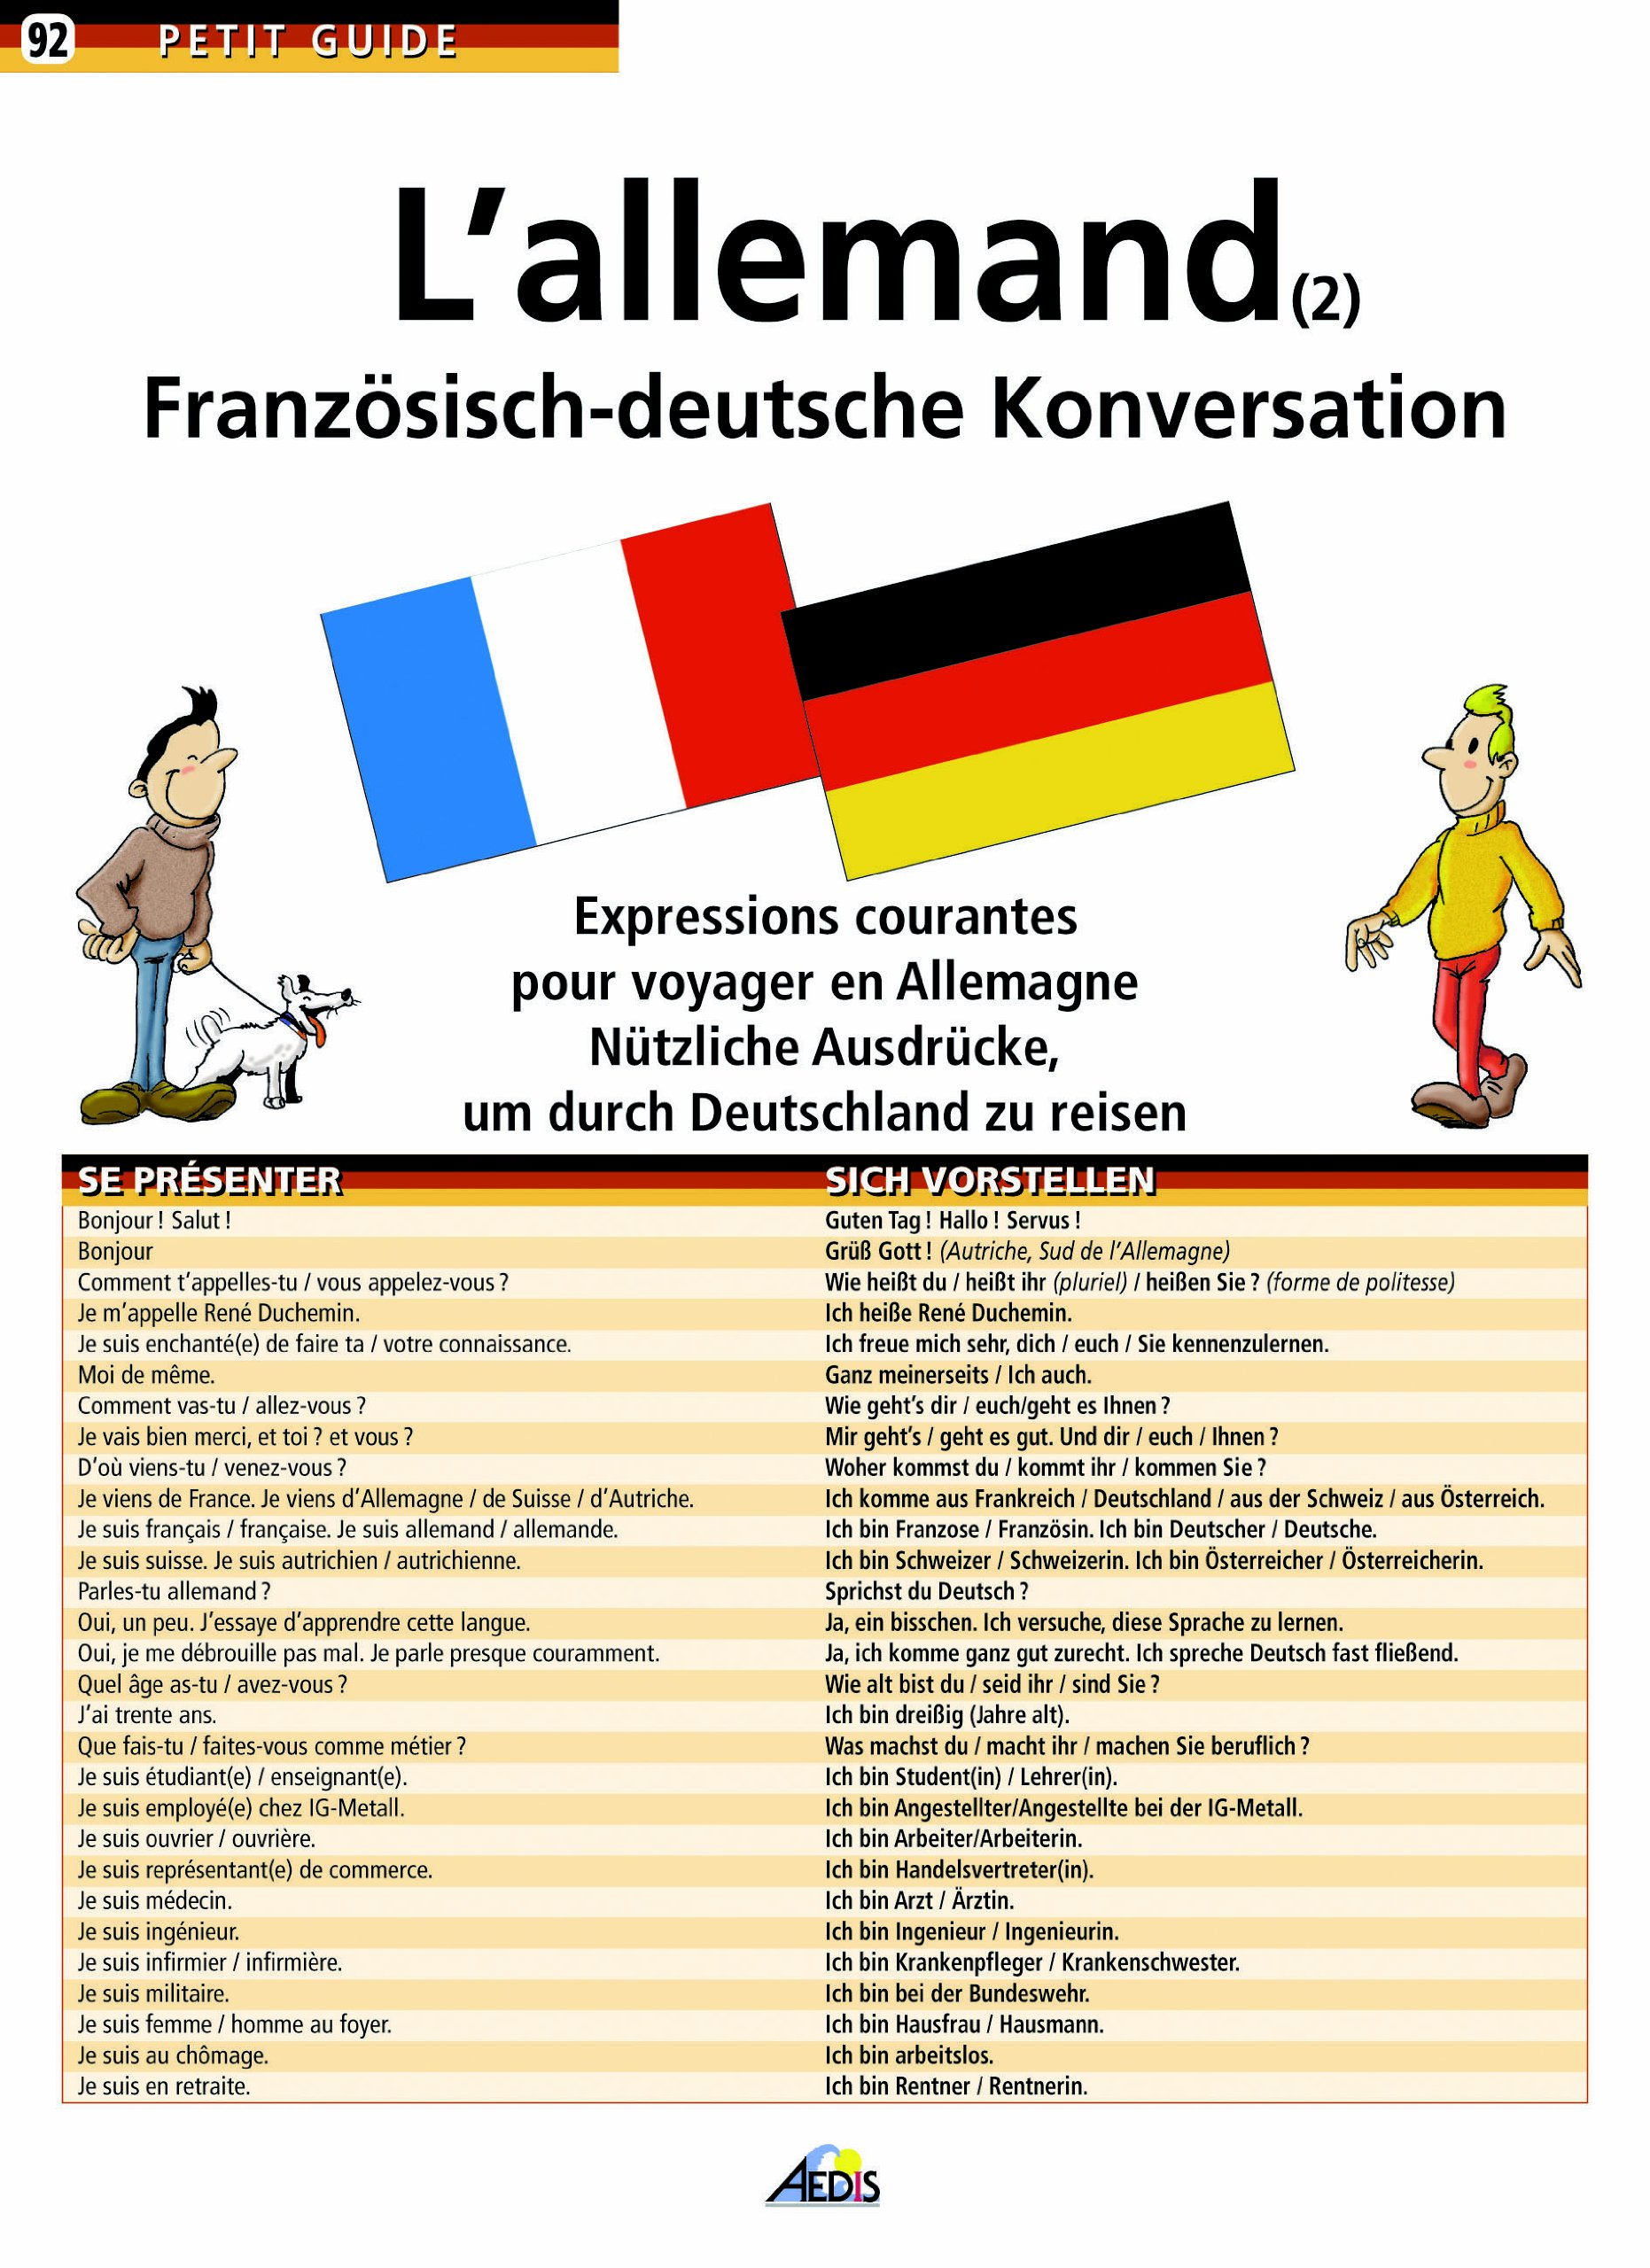 L'allemand tome 2 (Petit Guide 92)